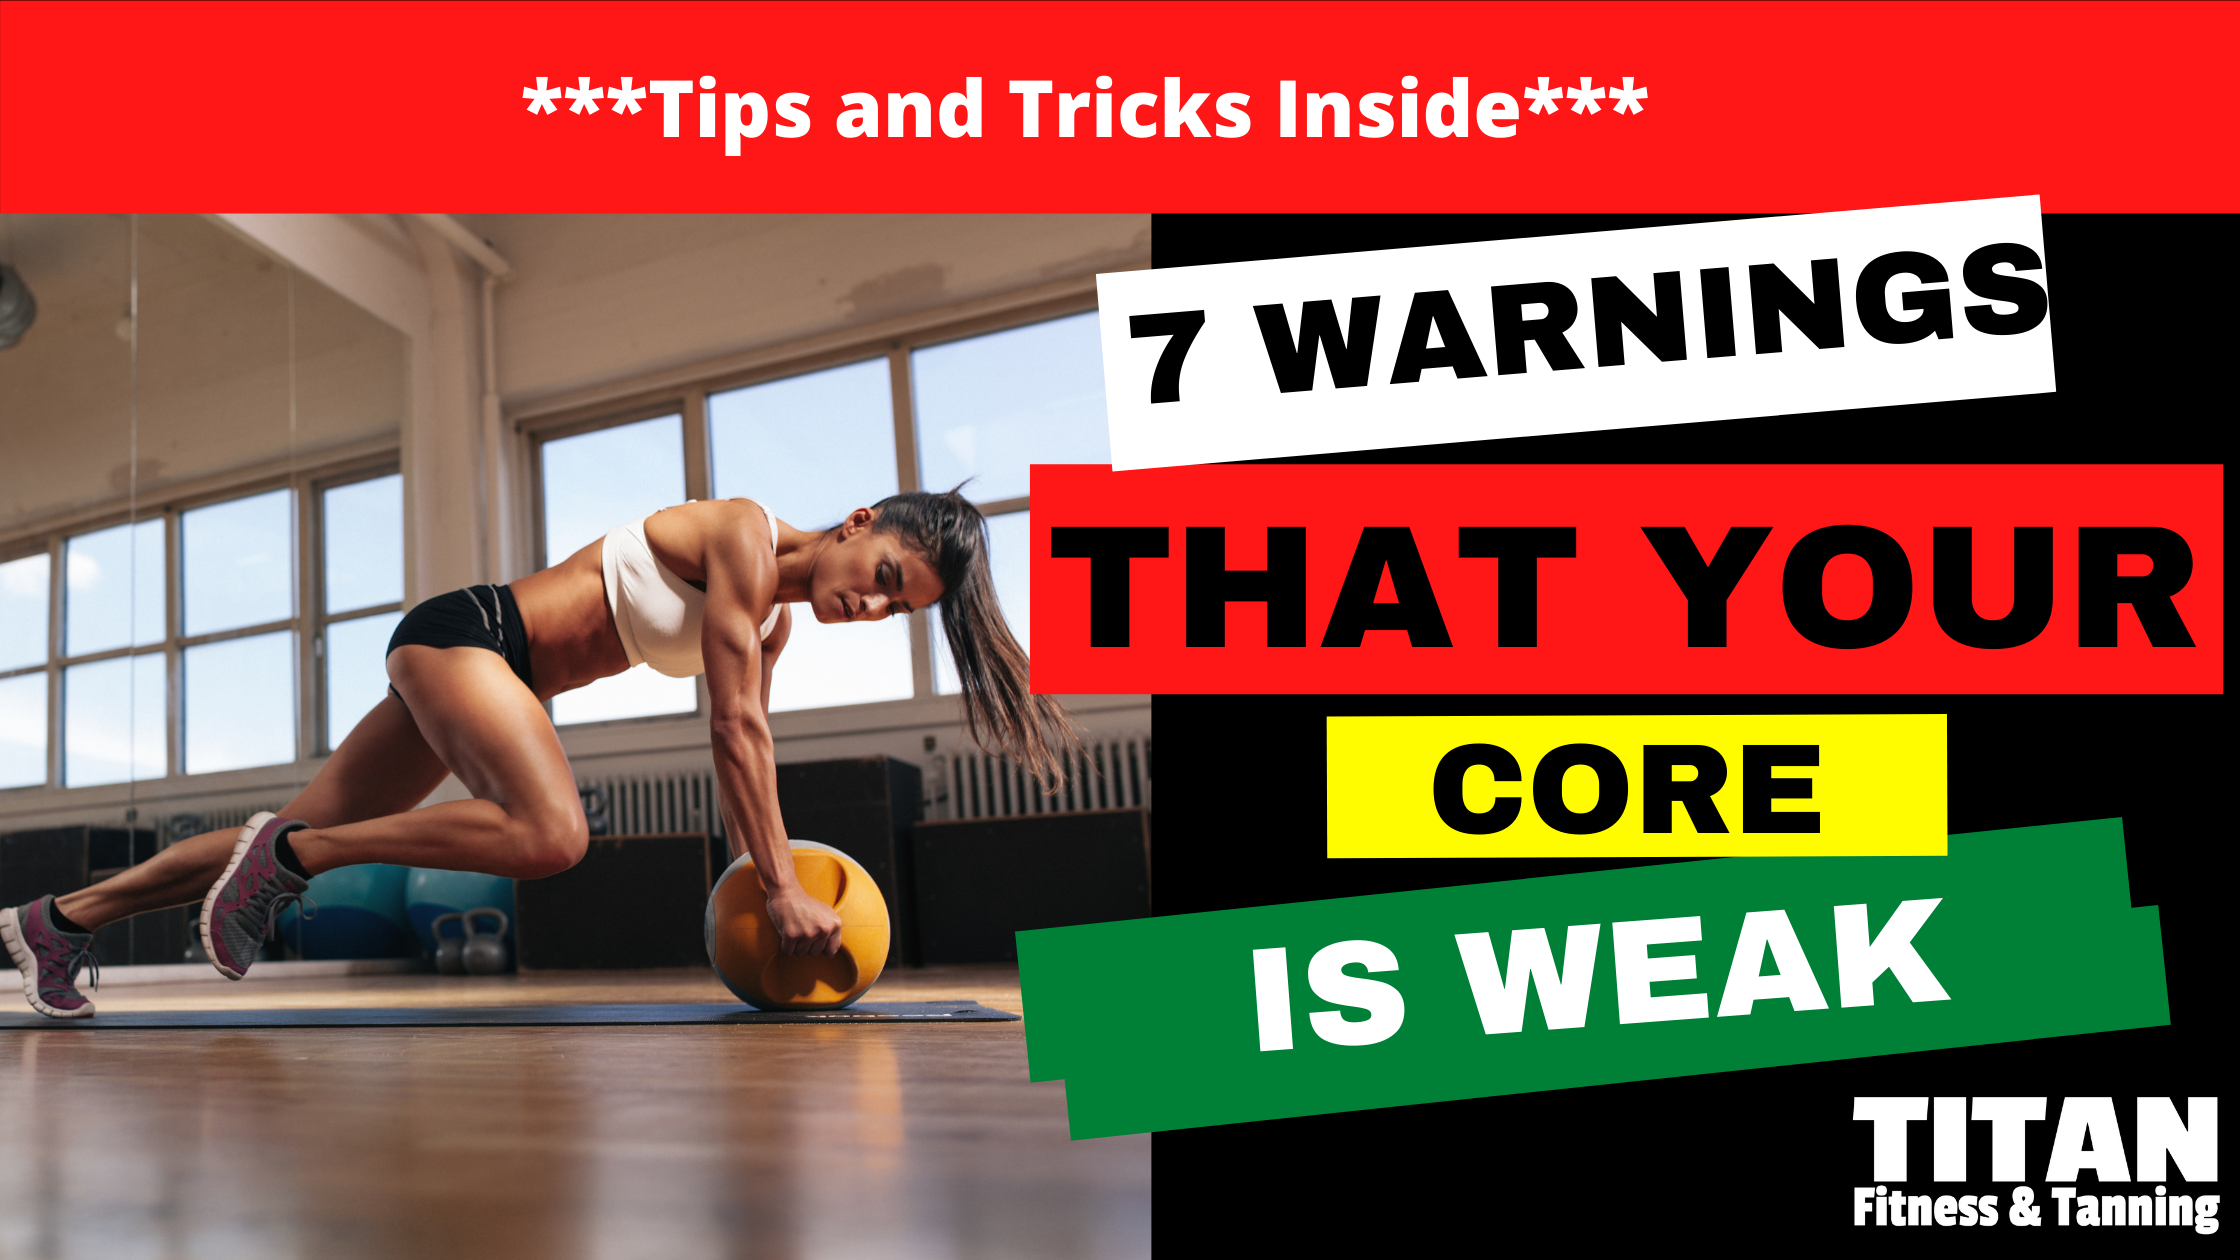 7 warning signs that your core is weak